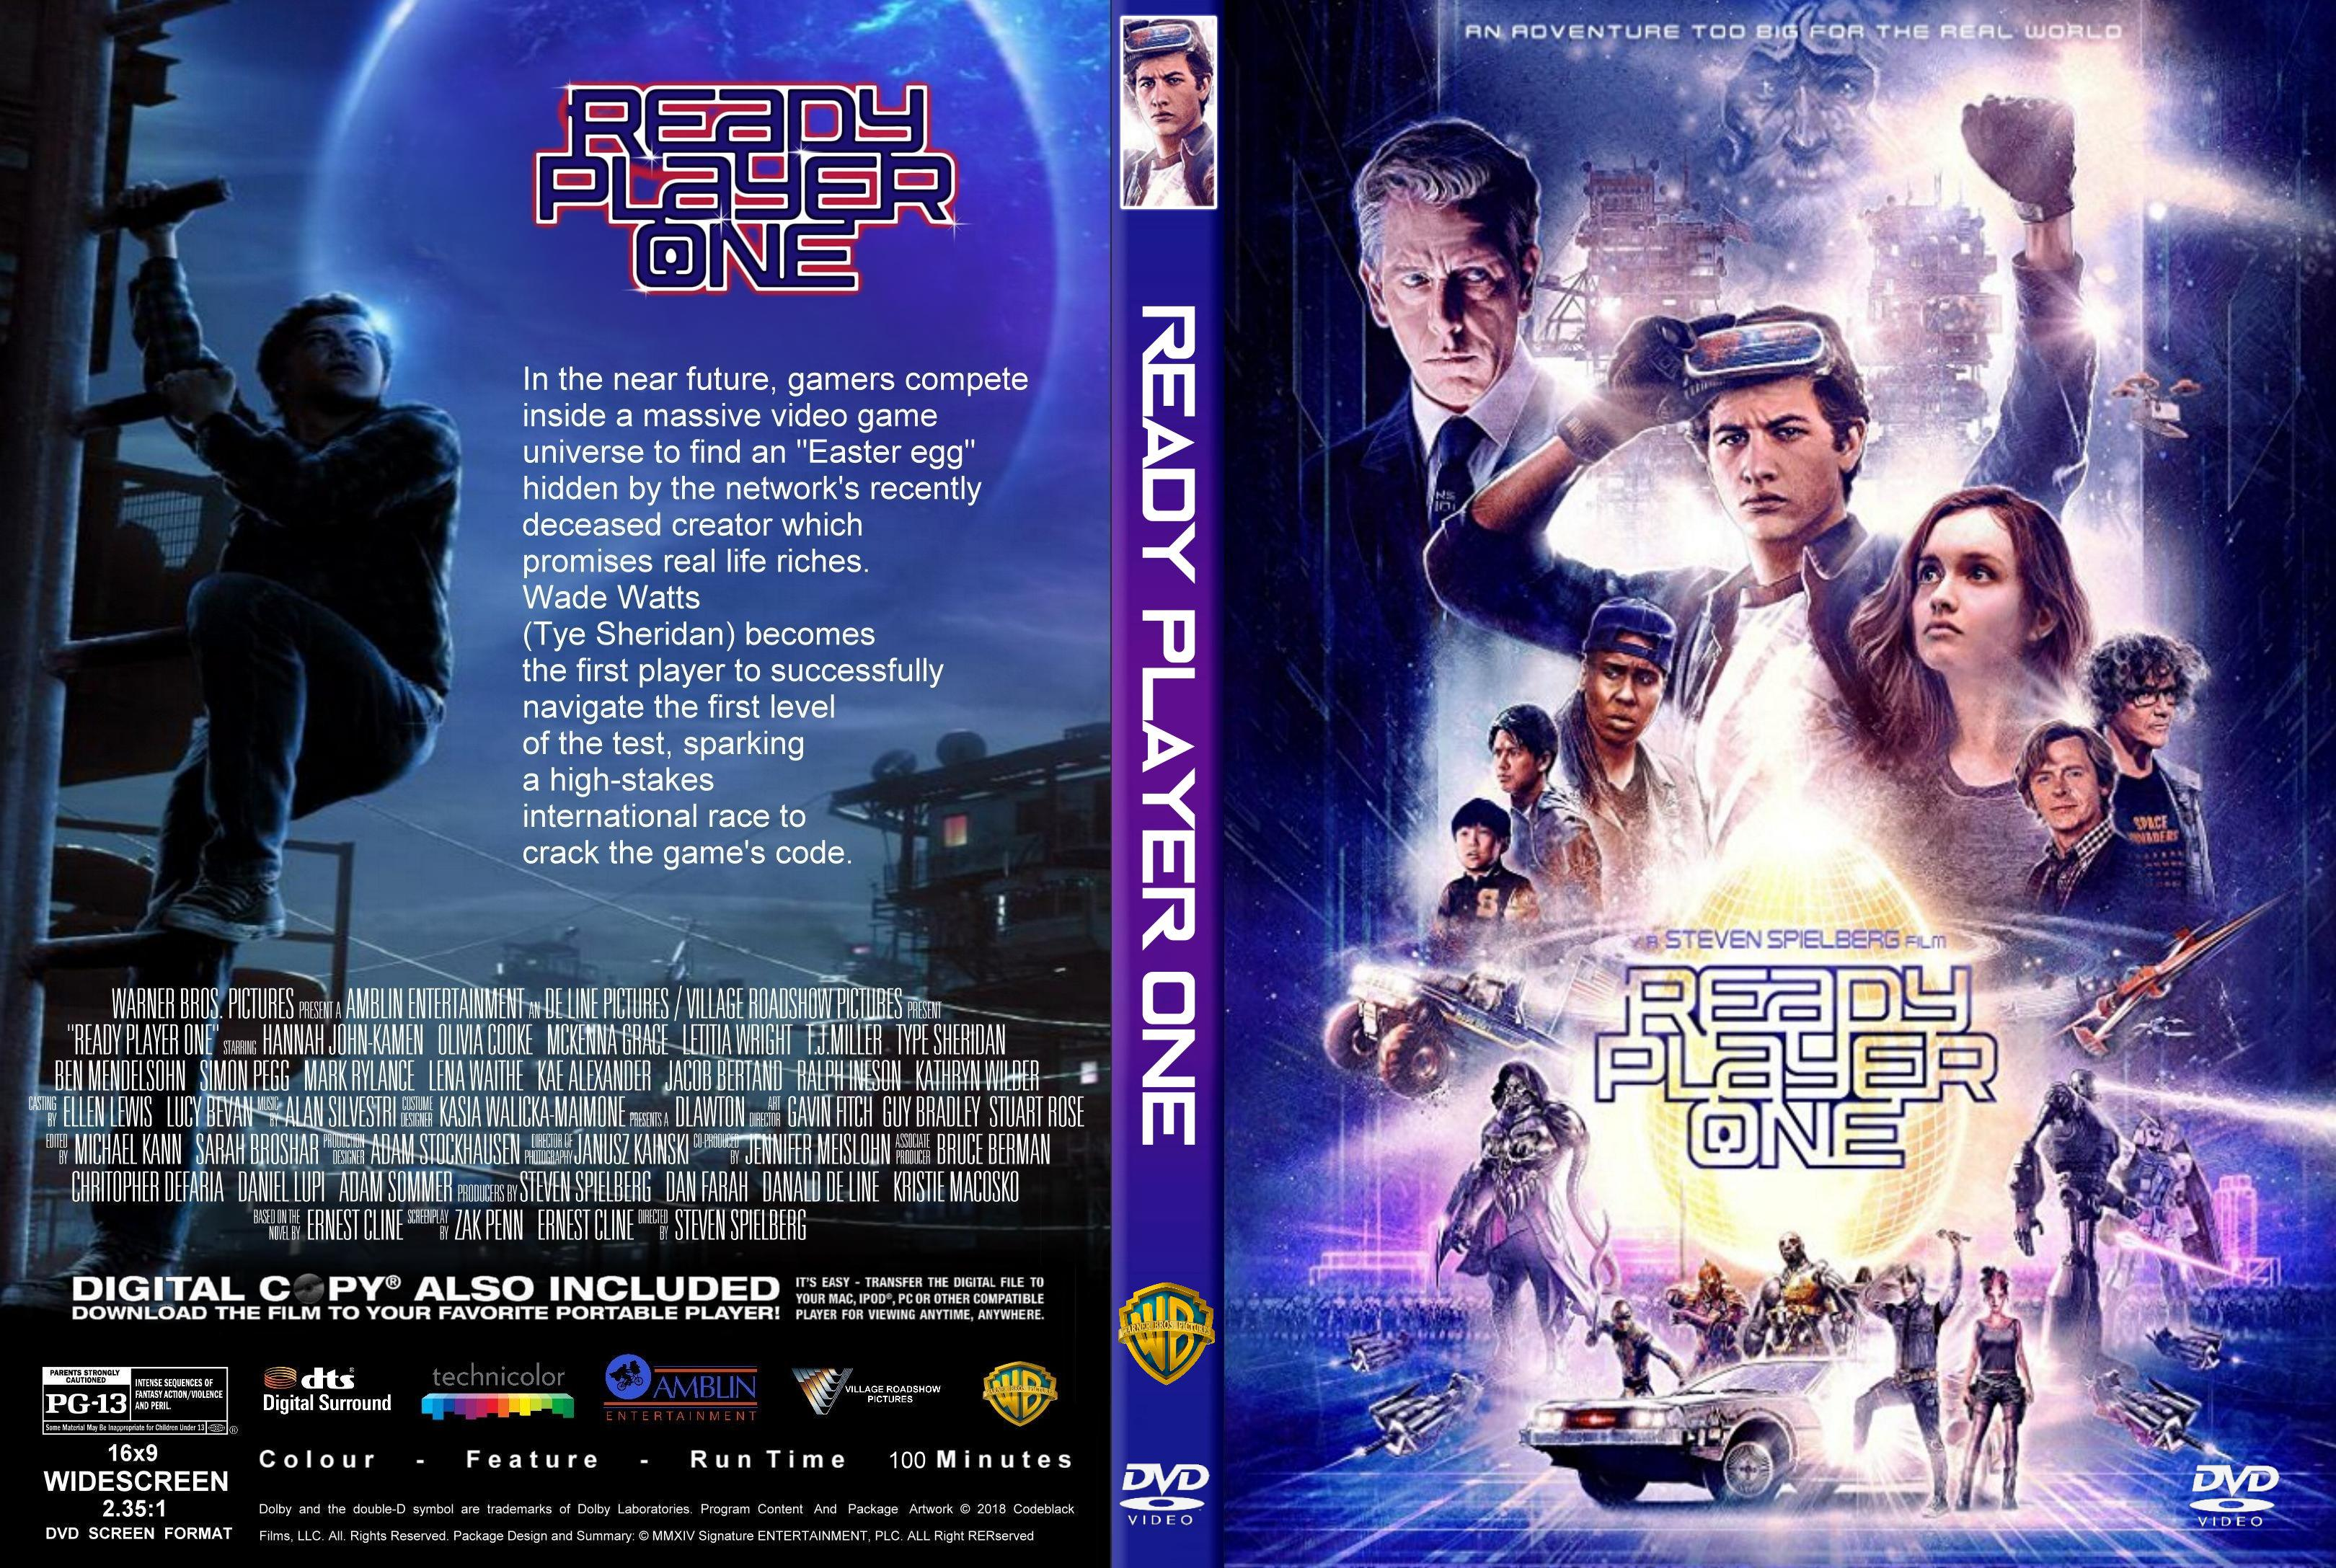 Ready Player One DVD Cover   Cover Addict - Free DVD